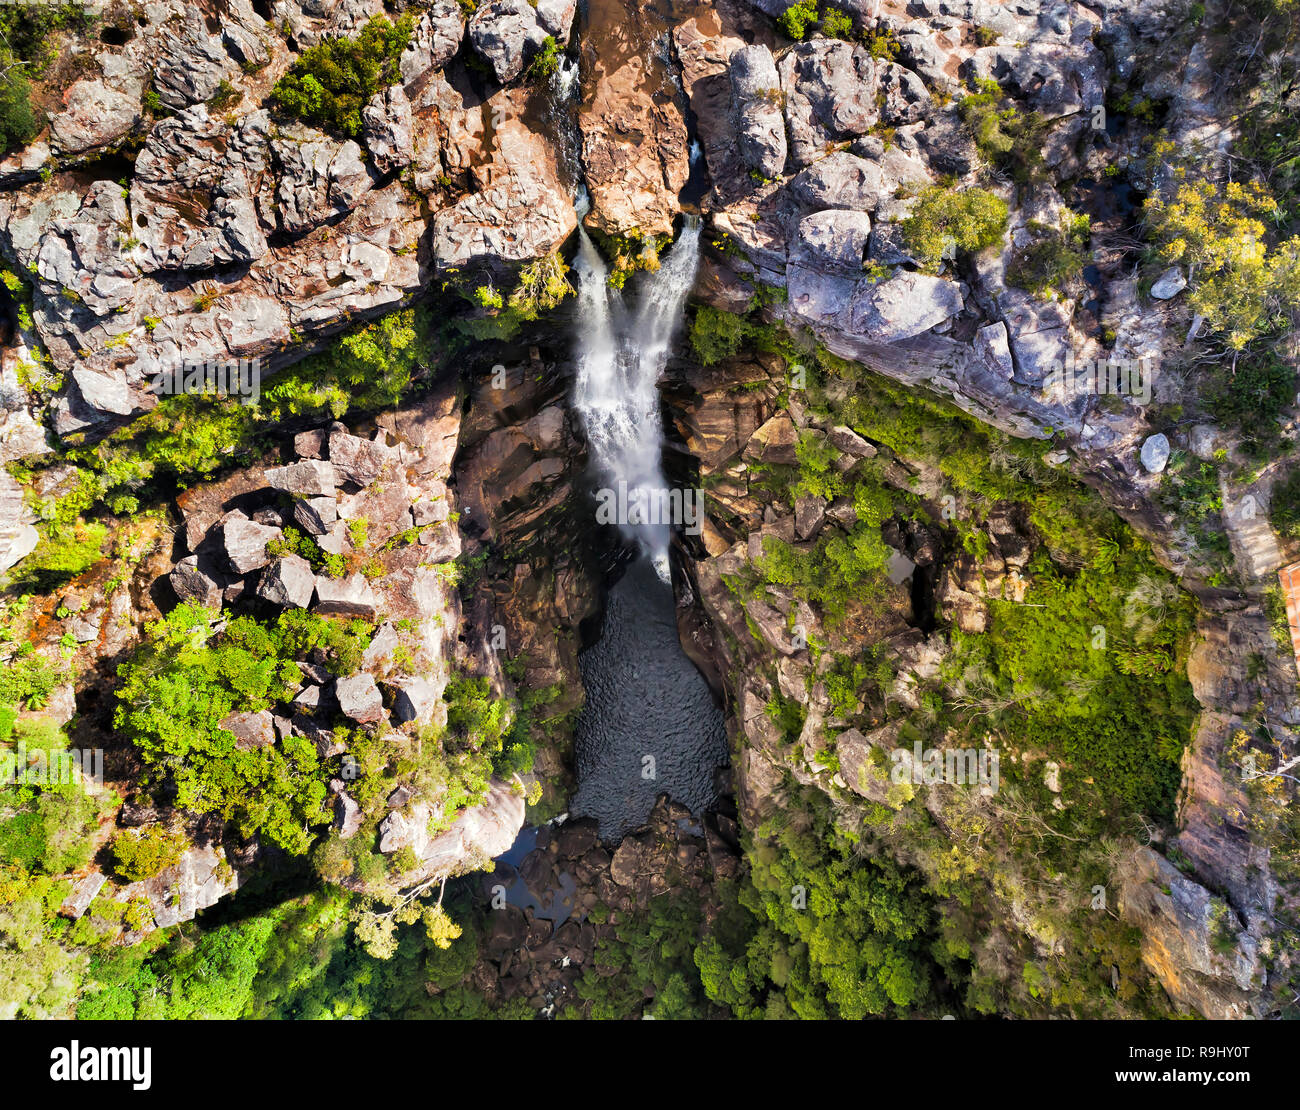 Two streams of Carrington fall on Kangaroo river flowing down to Kangaroo valley in Budderoo national park seen from above top down. - Stock Image